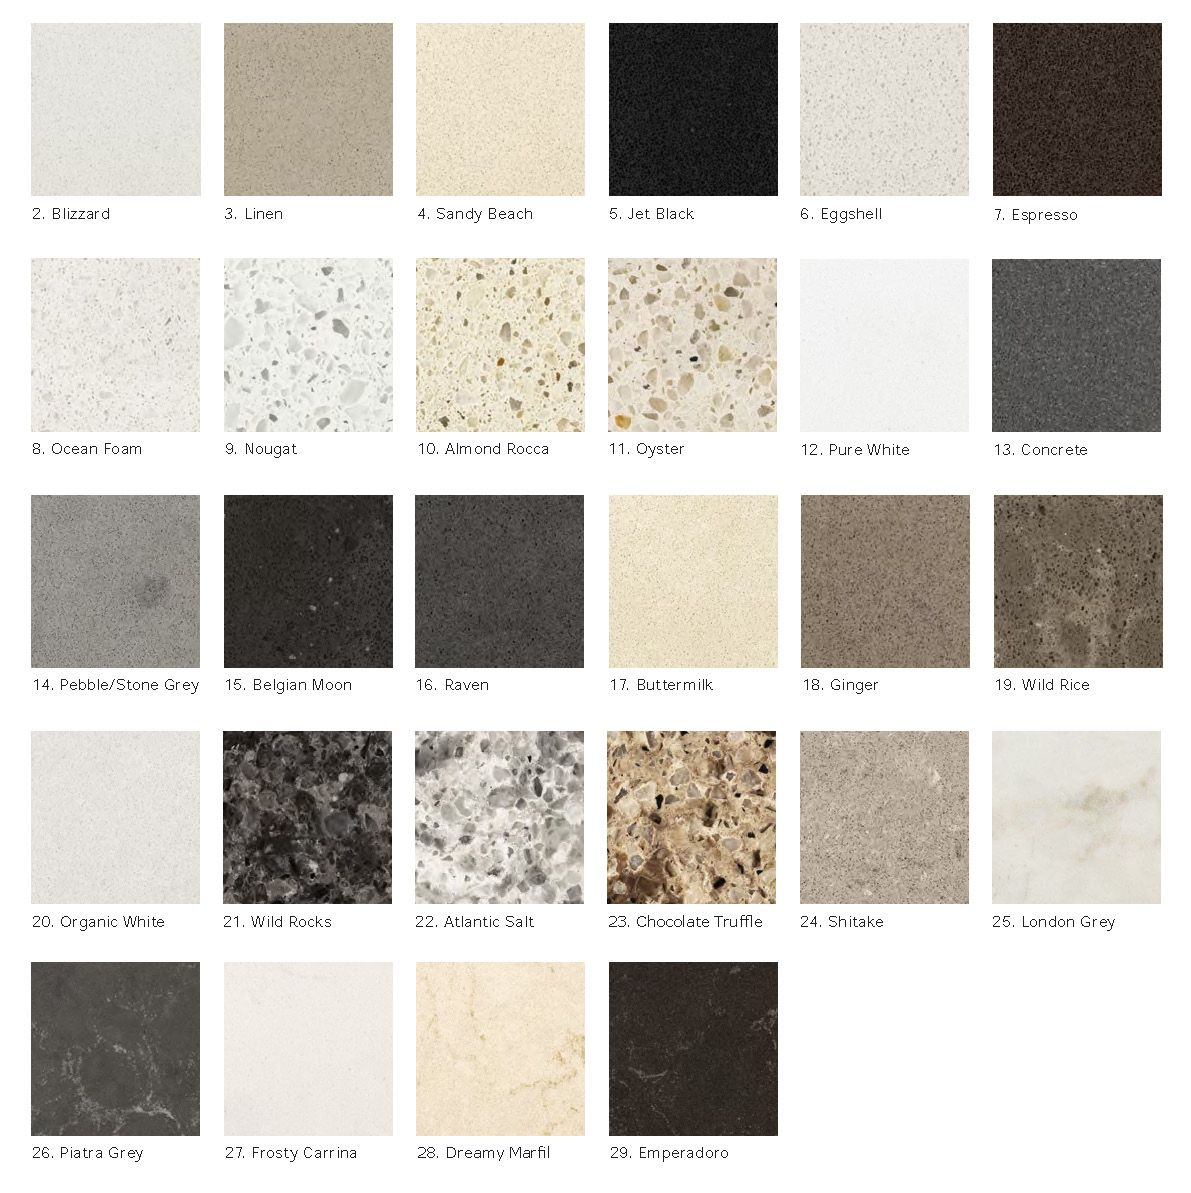 ikea kitchen countertops how to make spice racks for cabinets personlig quartz countertop colours remodel